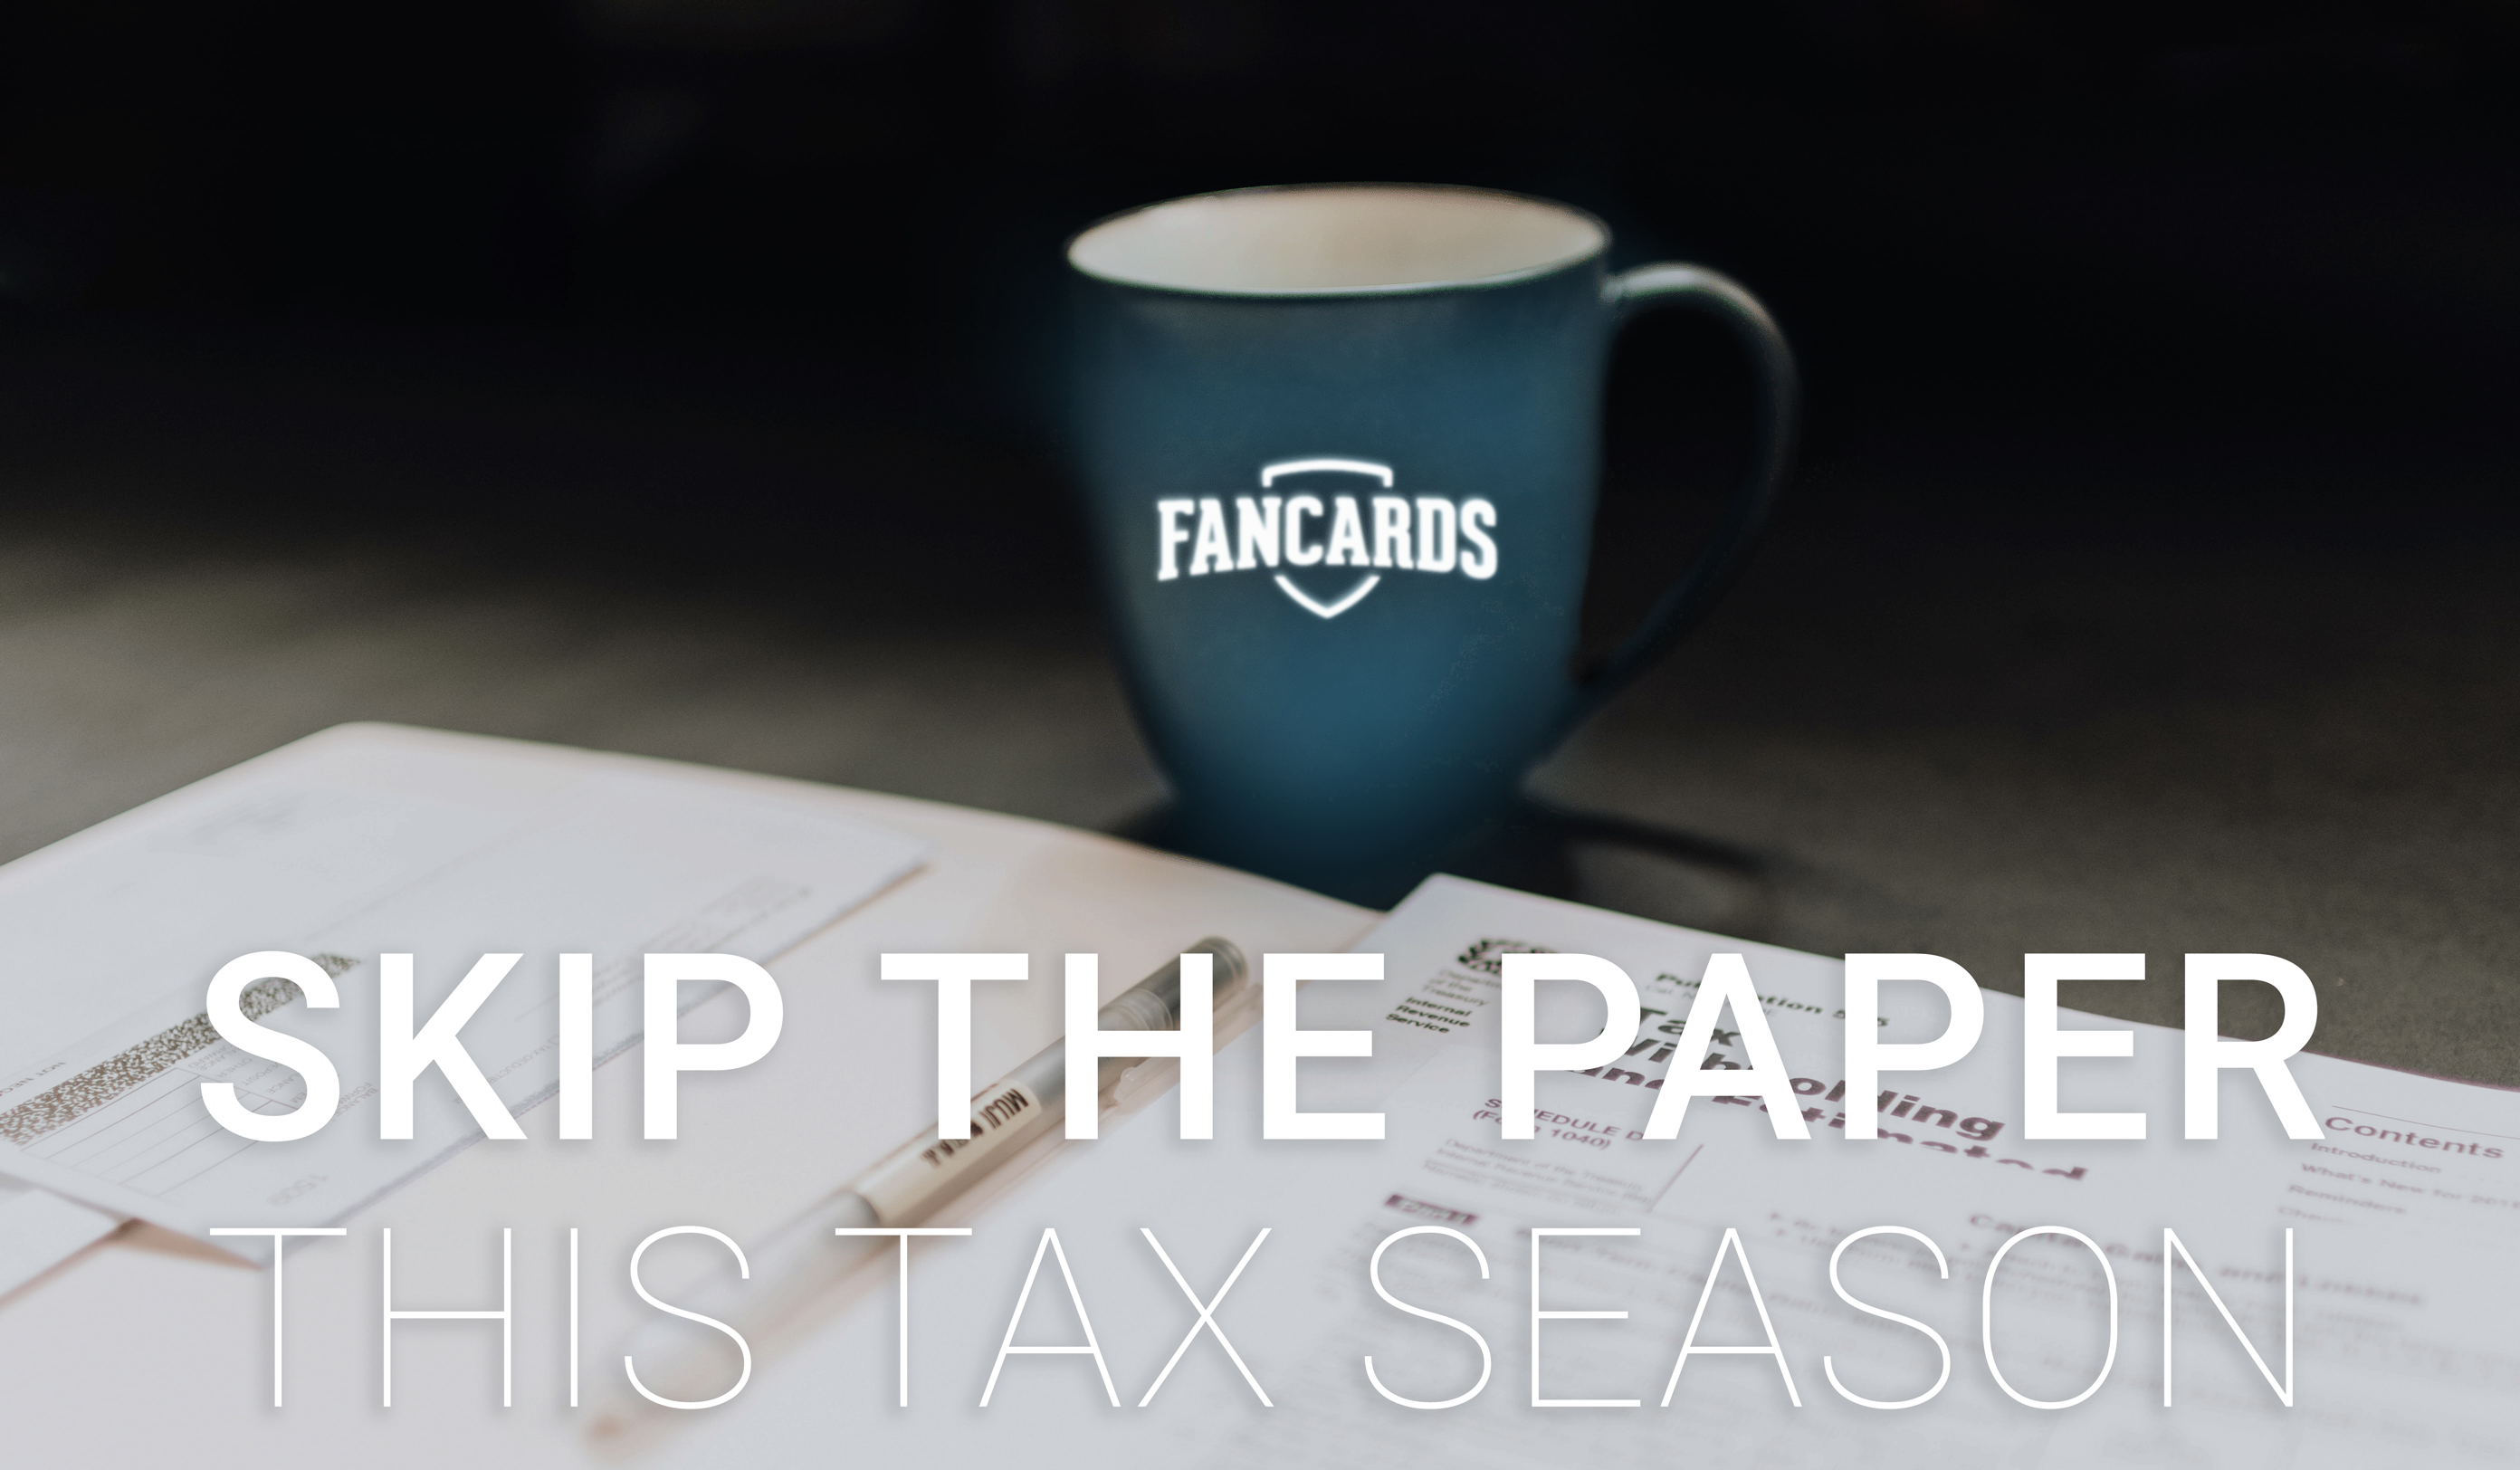 Fancards is the number one prepaid debit card for college sports fans this tax season